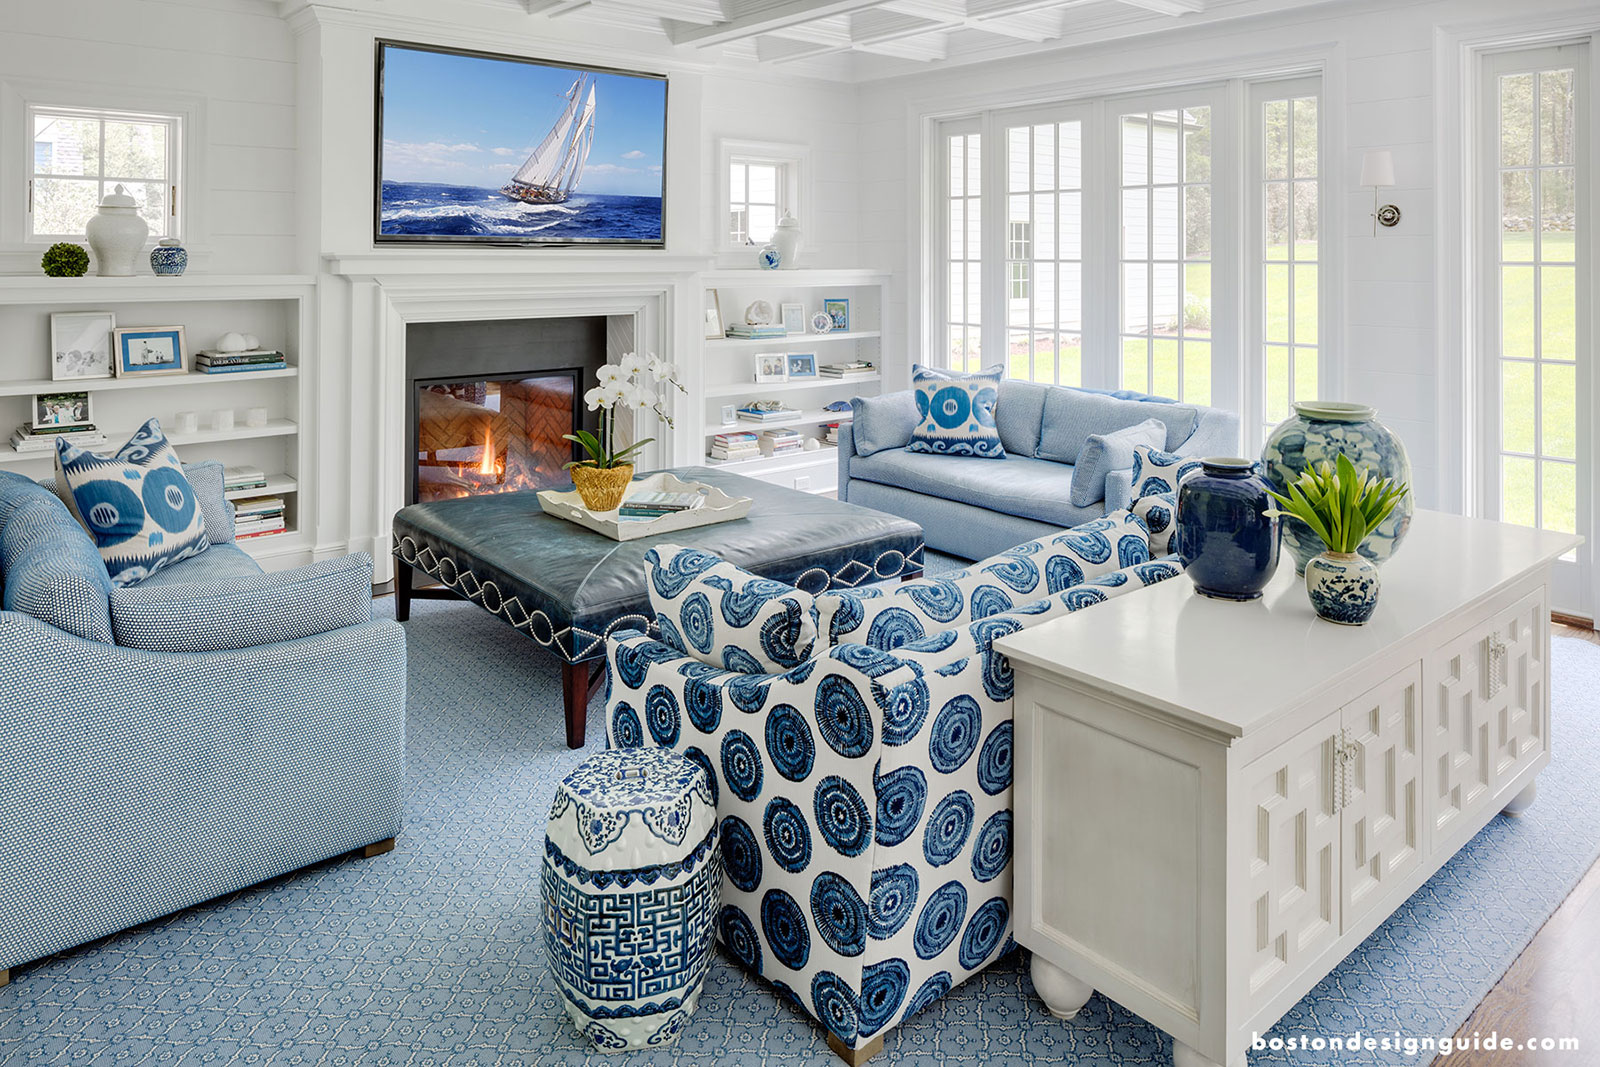 Power Couple Blue White Boston Design Guide